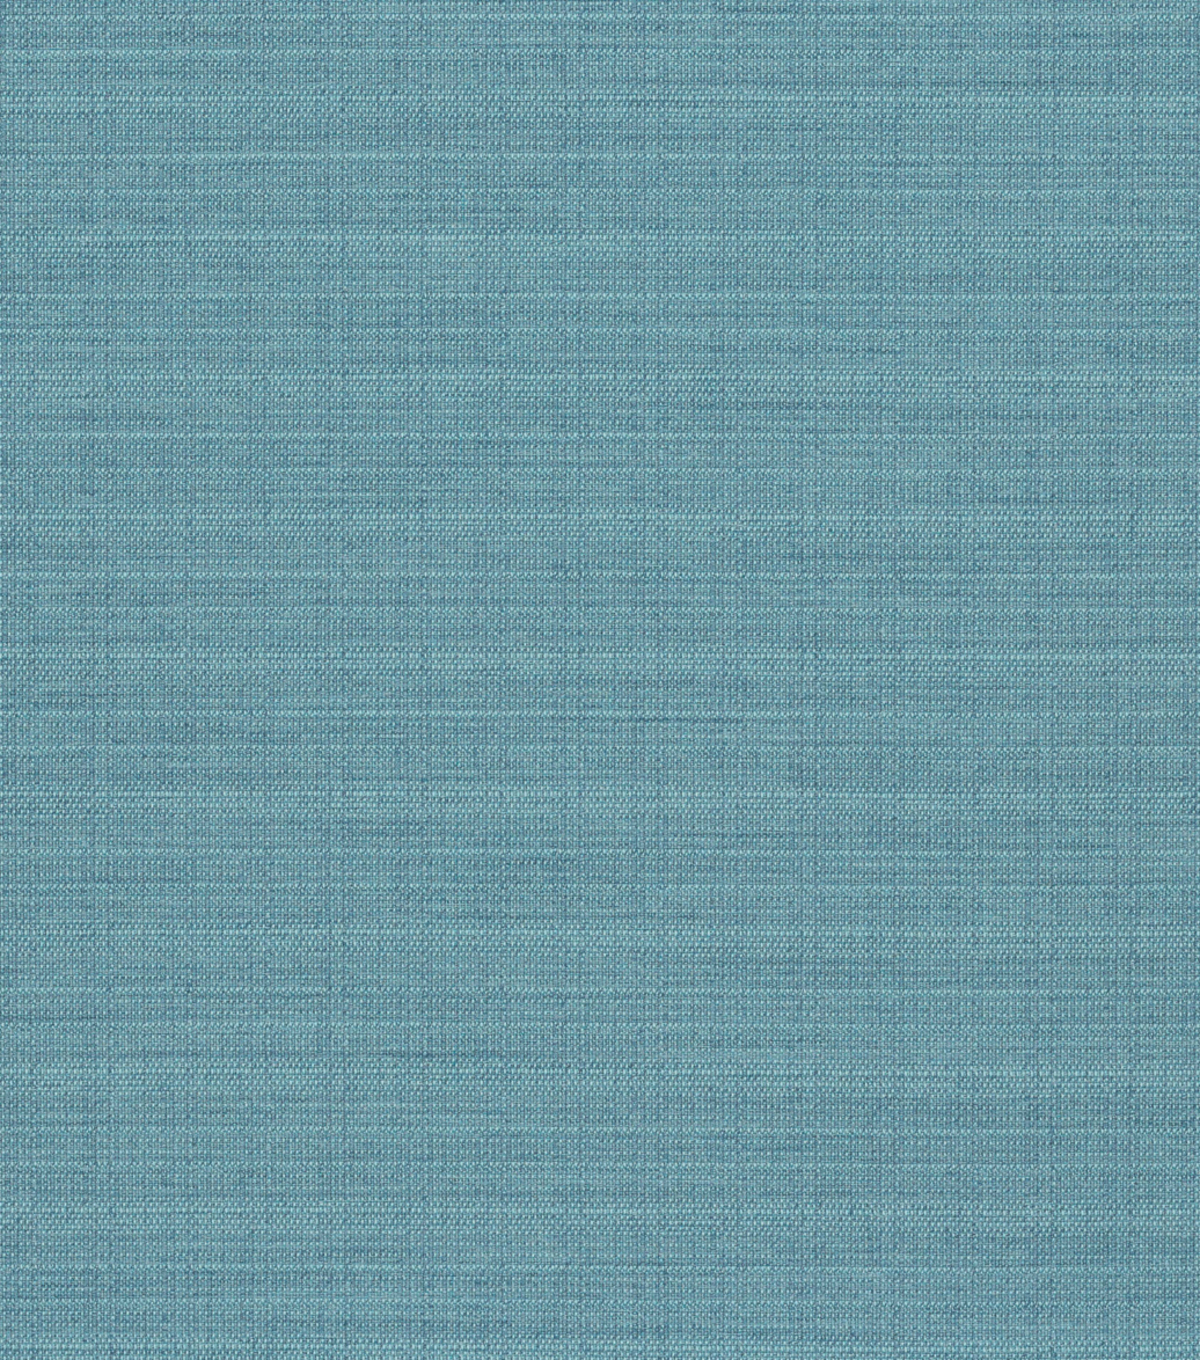 Home Decor 8\u0022x8\u0022 Fabric Swatch-Boca Pacific